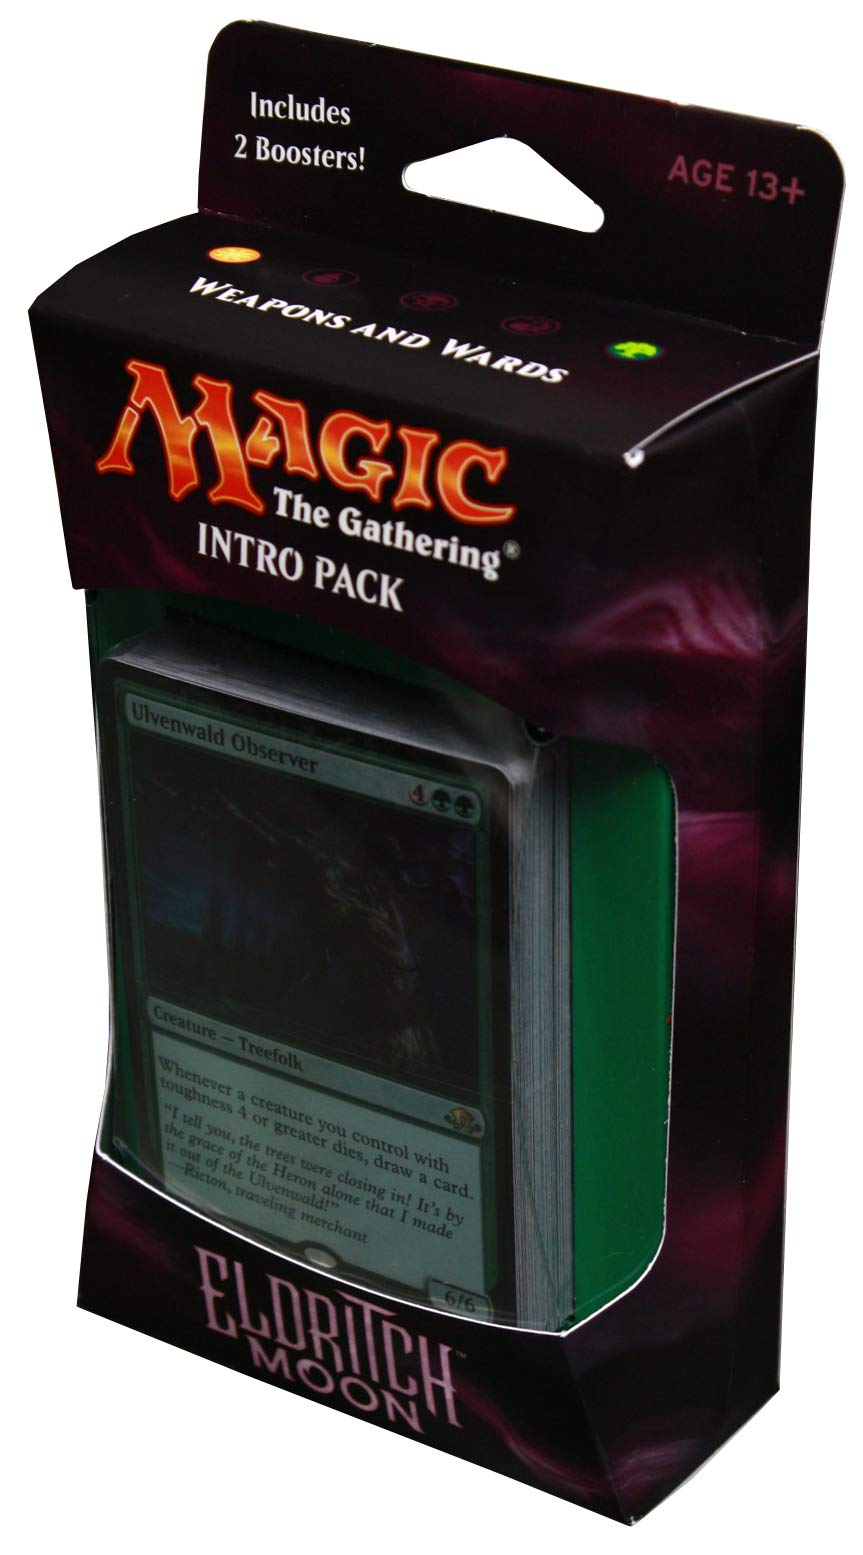 Magic the Gathering: MTG Eldritch Moon: Intro Pack / Theme Deck: Weapons and Wards (includes 2 Booster Packs & Alternate…